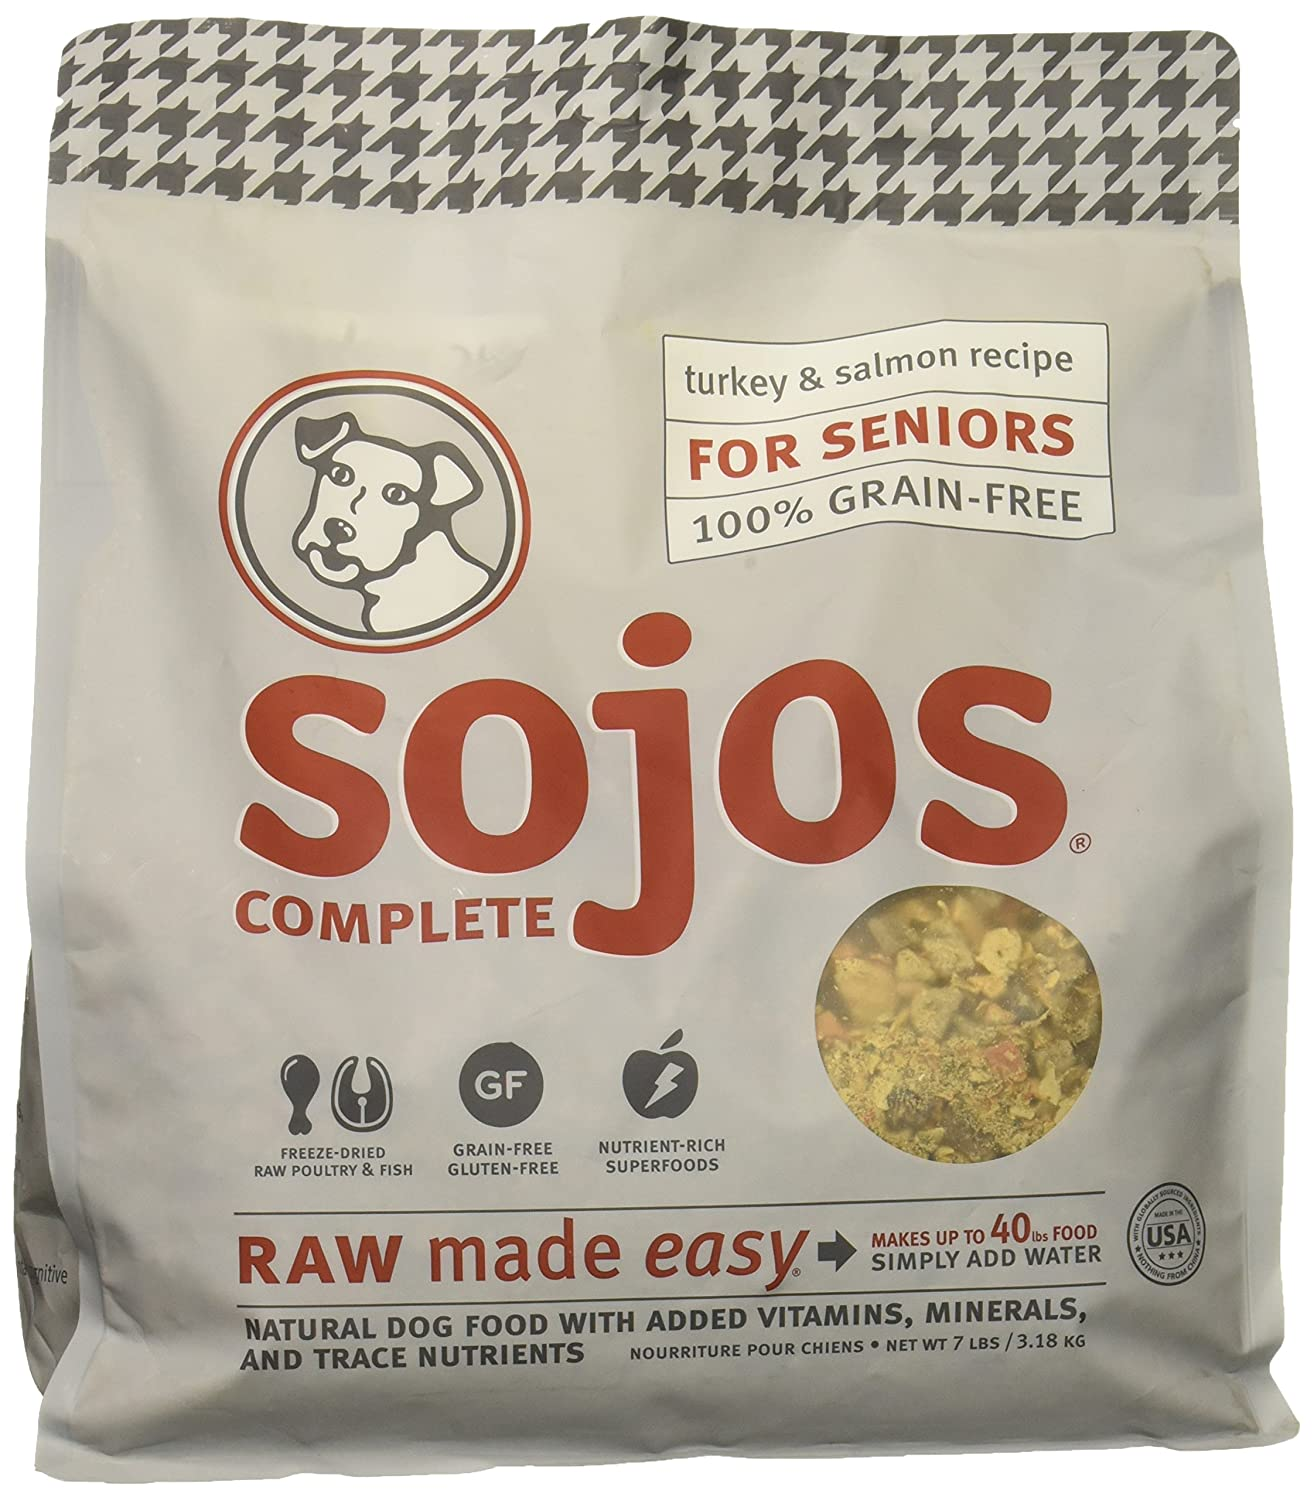 2. Sojos Complete Natural Freeze-Dried Grain-Free Dog Food